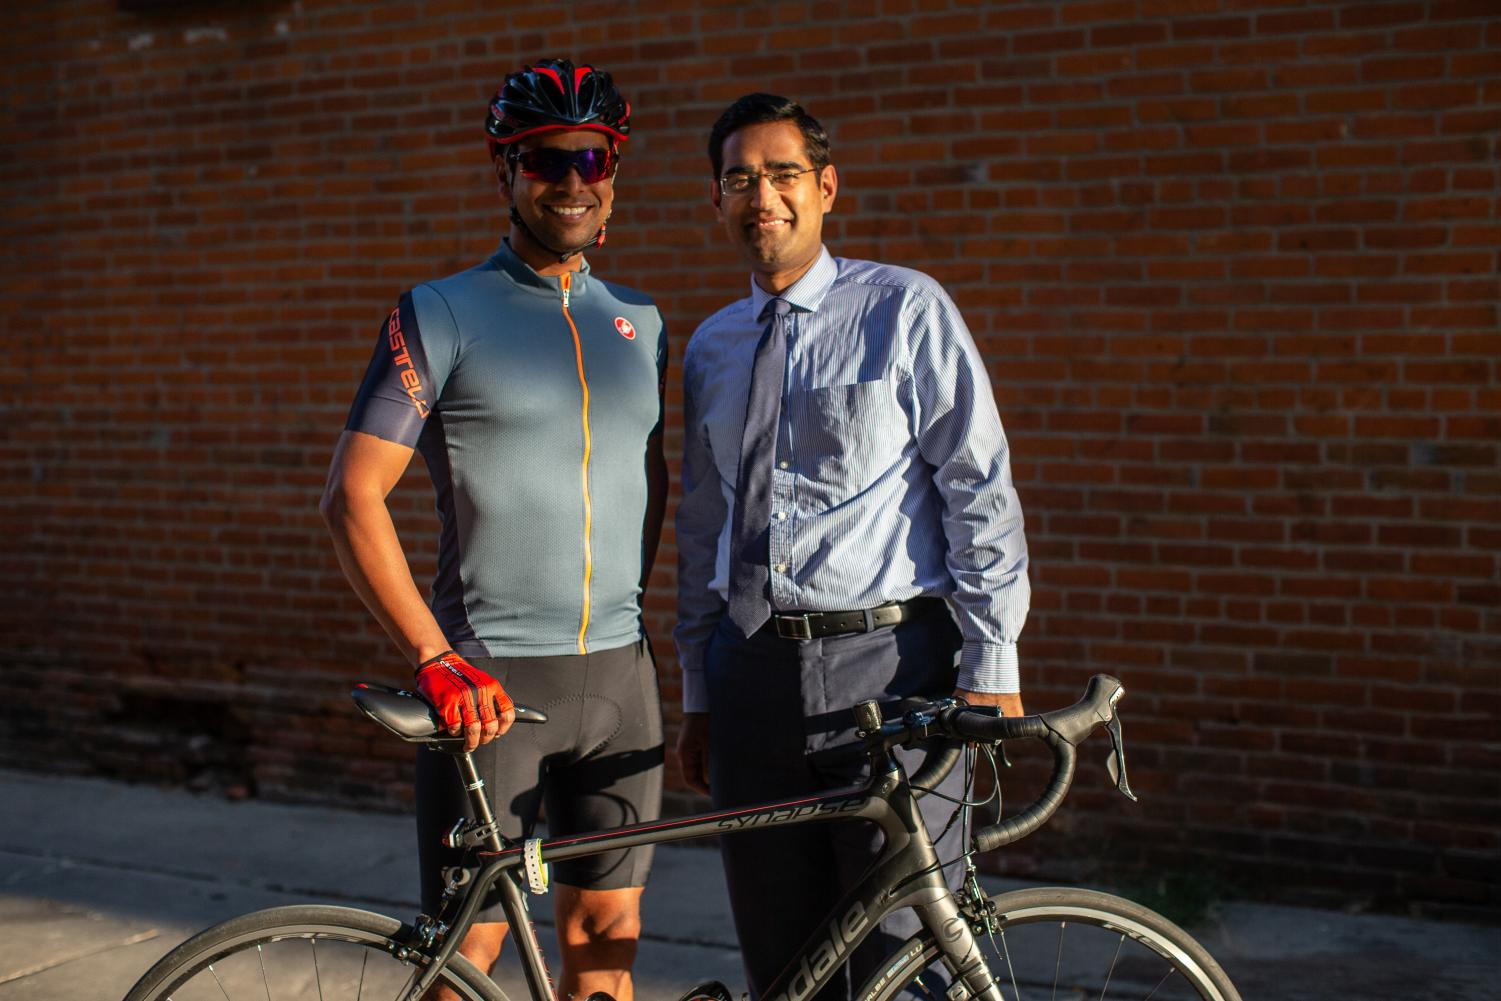 Ashish Mishra and Varun Monga pose for a portrait in downtown Iowa City on Thursday. The pair met through cycling when Mitra biked 1,000 miles across Iowa to raise money for sarcoma.